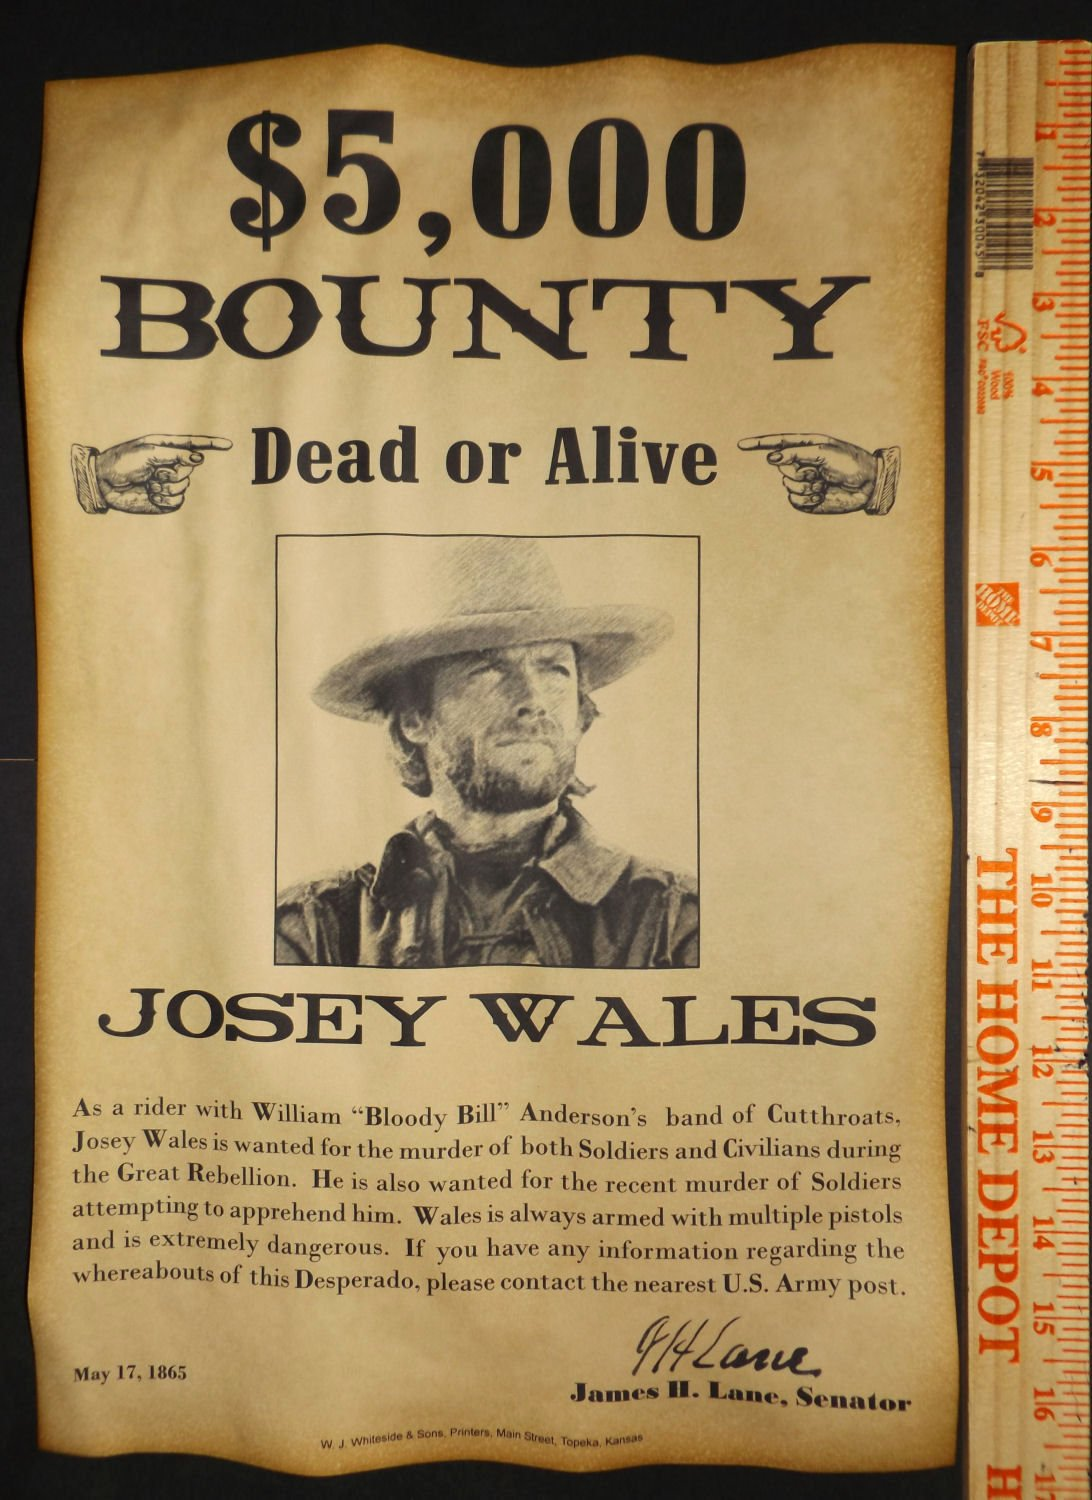 Old Western Wanted Poster Best Of Big 11 X 17 Josey Wales Wanted Poster Old West Western